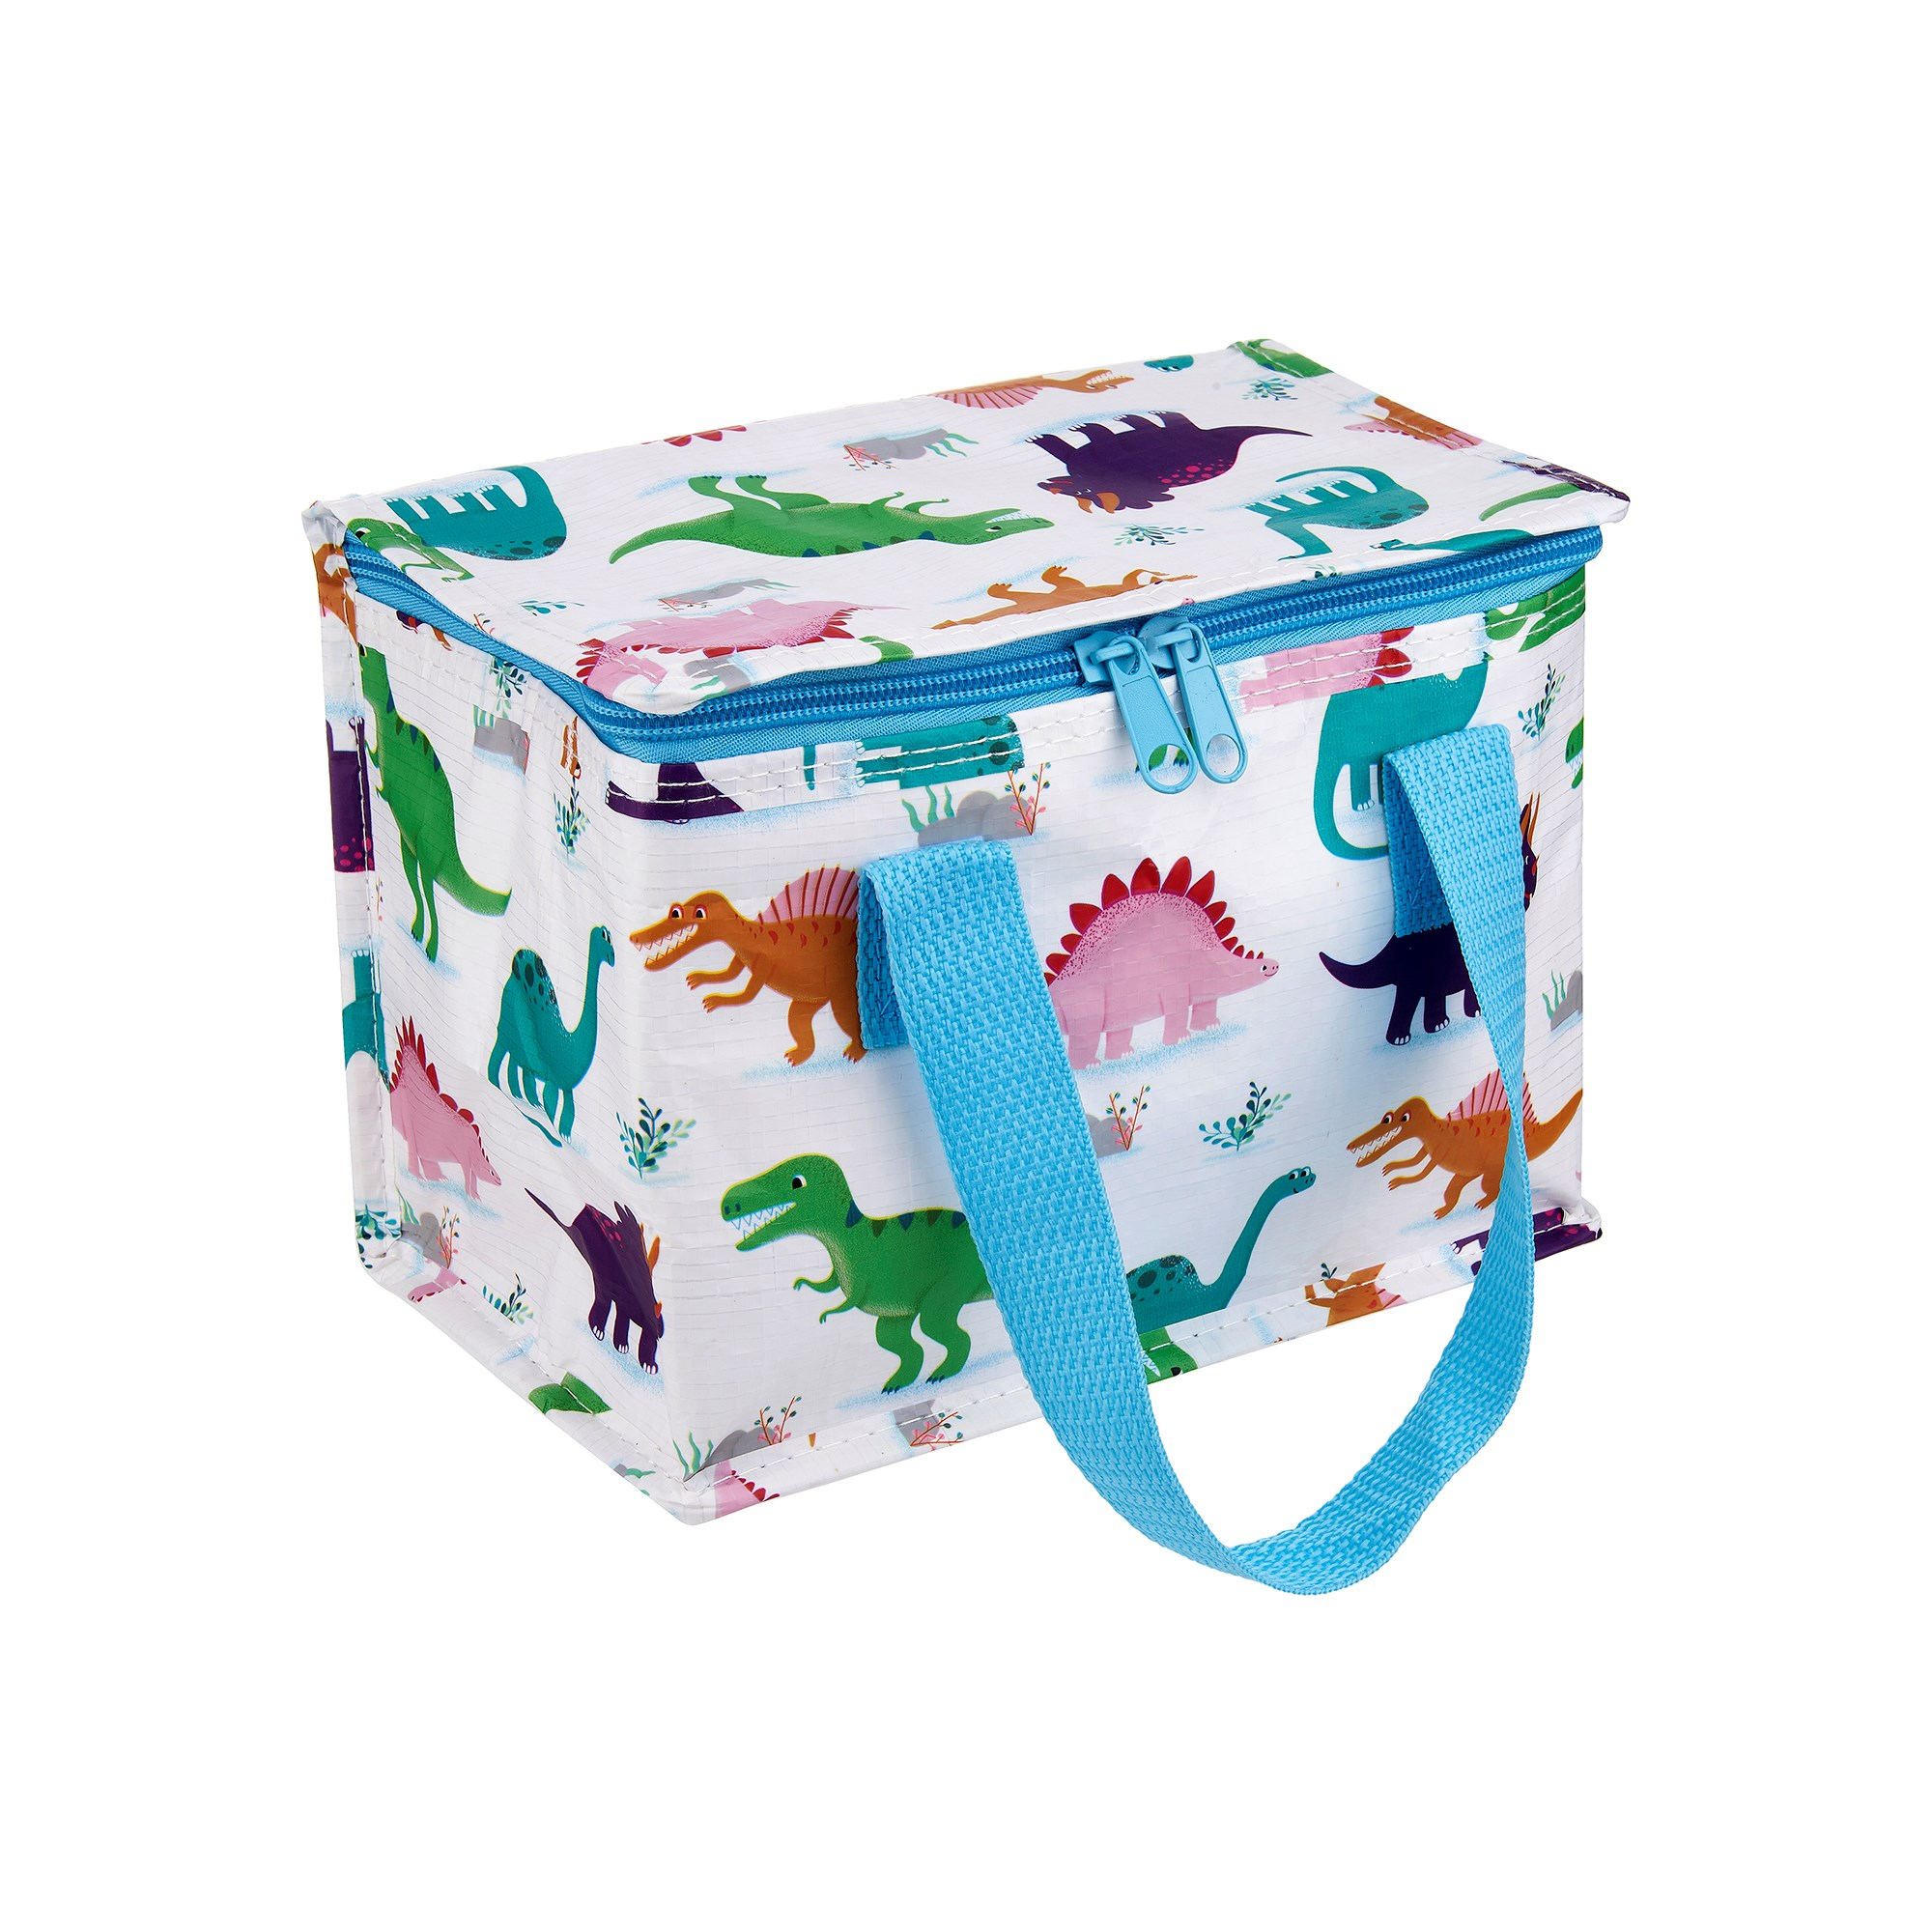 LUNCH BAG ROARSOME DINOSAURS